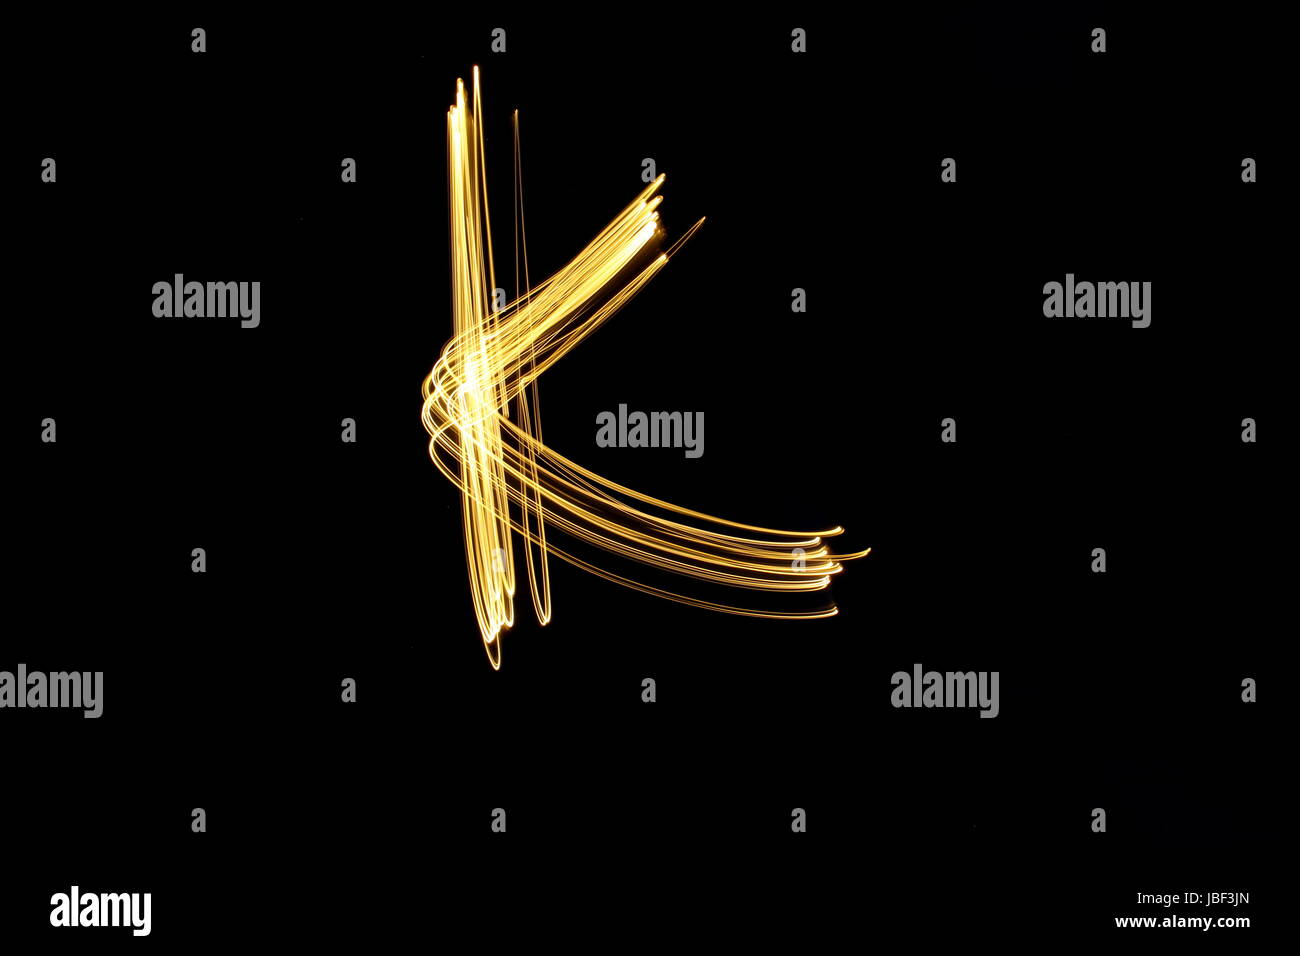 Gold letter K, Light Painting Photography, alphabet series, against a black background - Stock Image